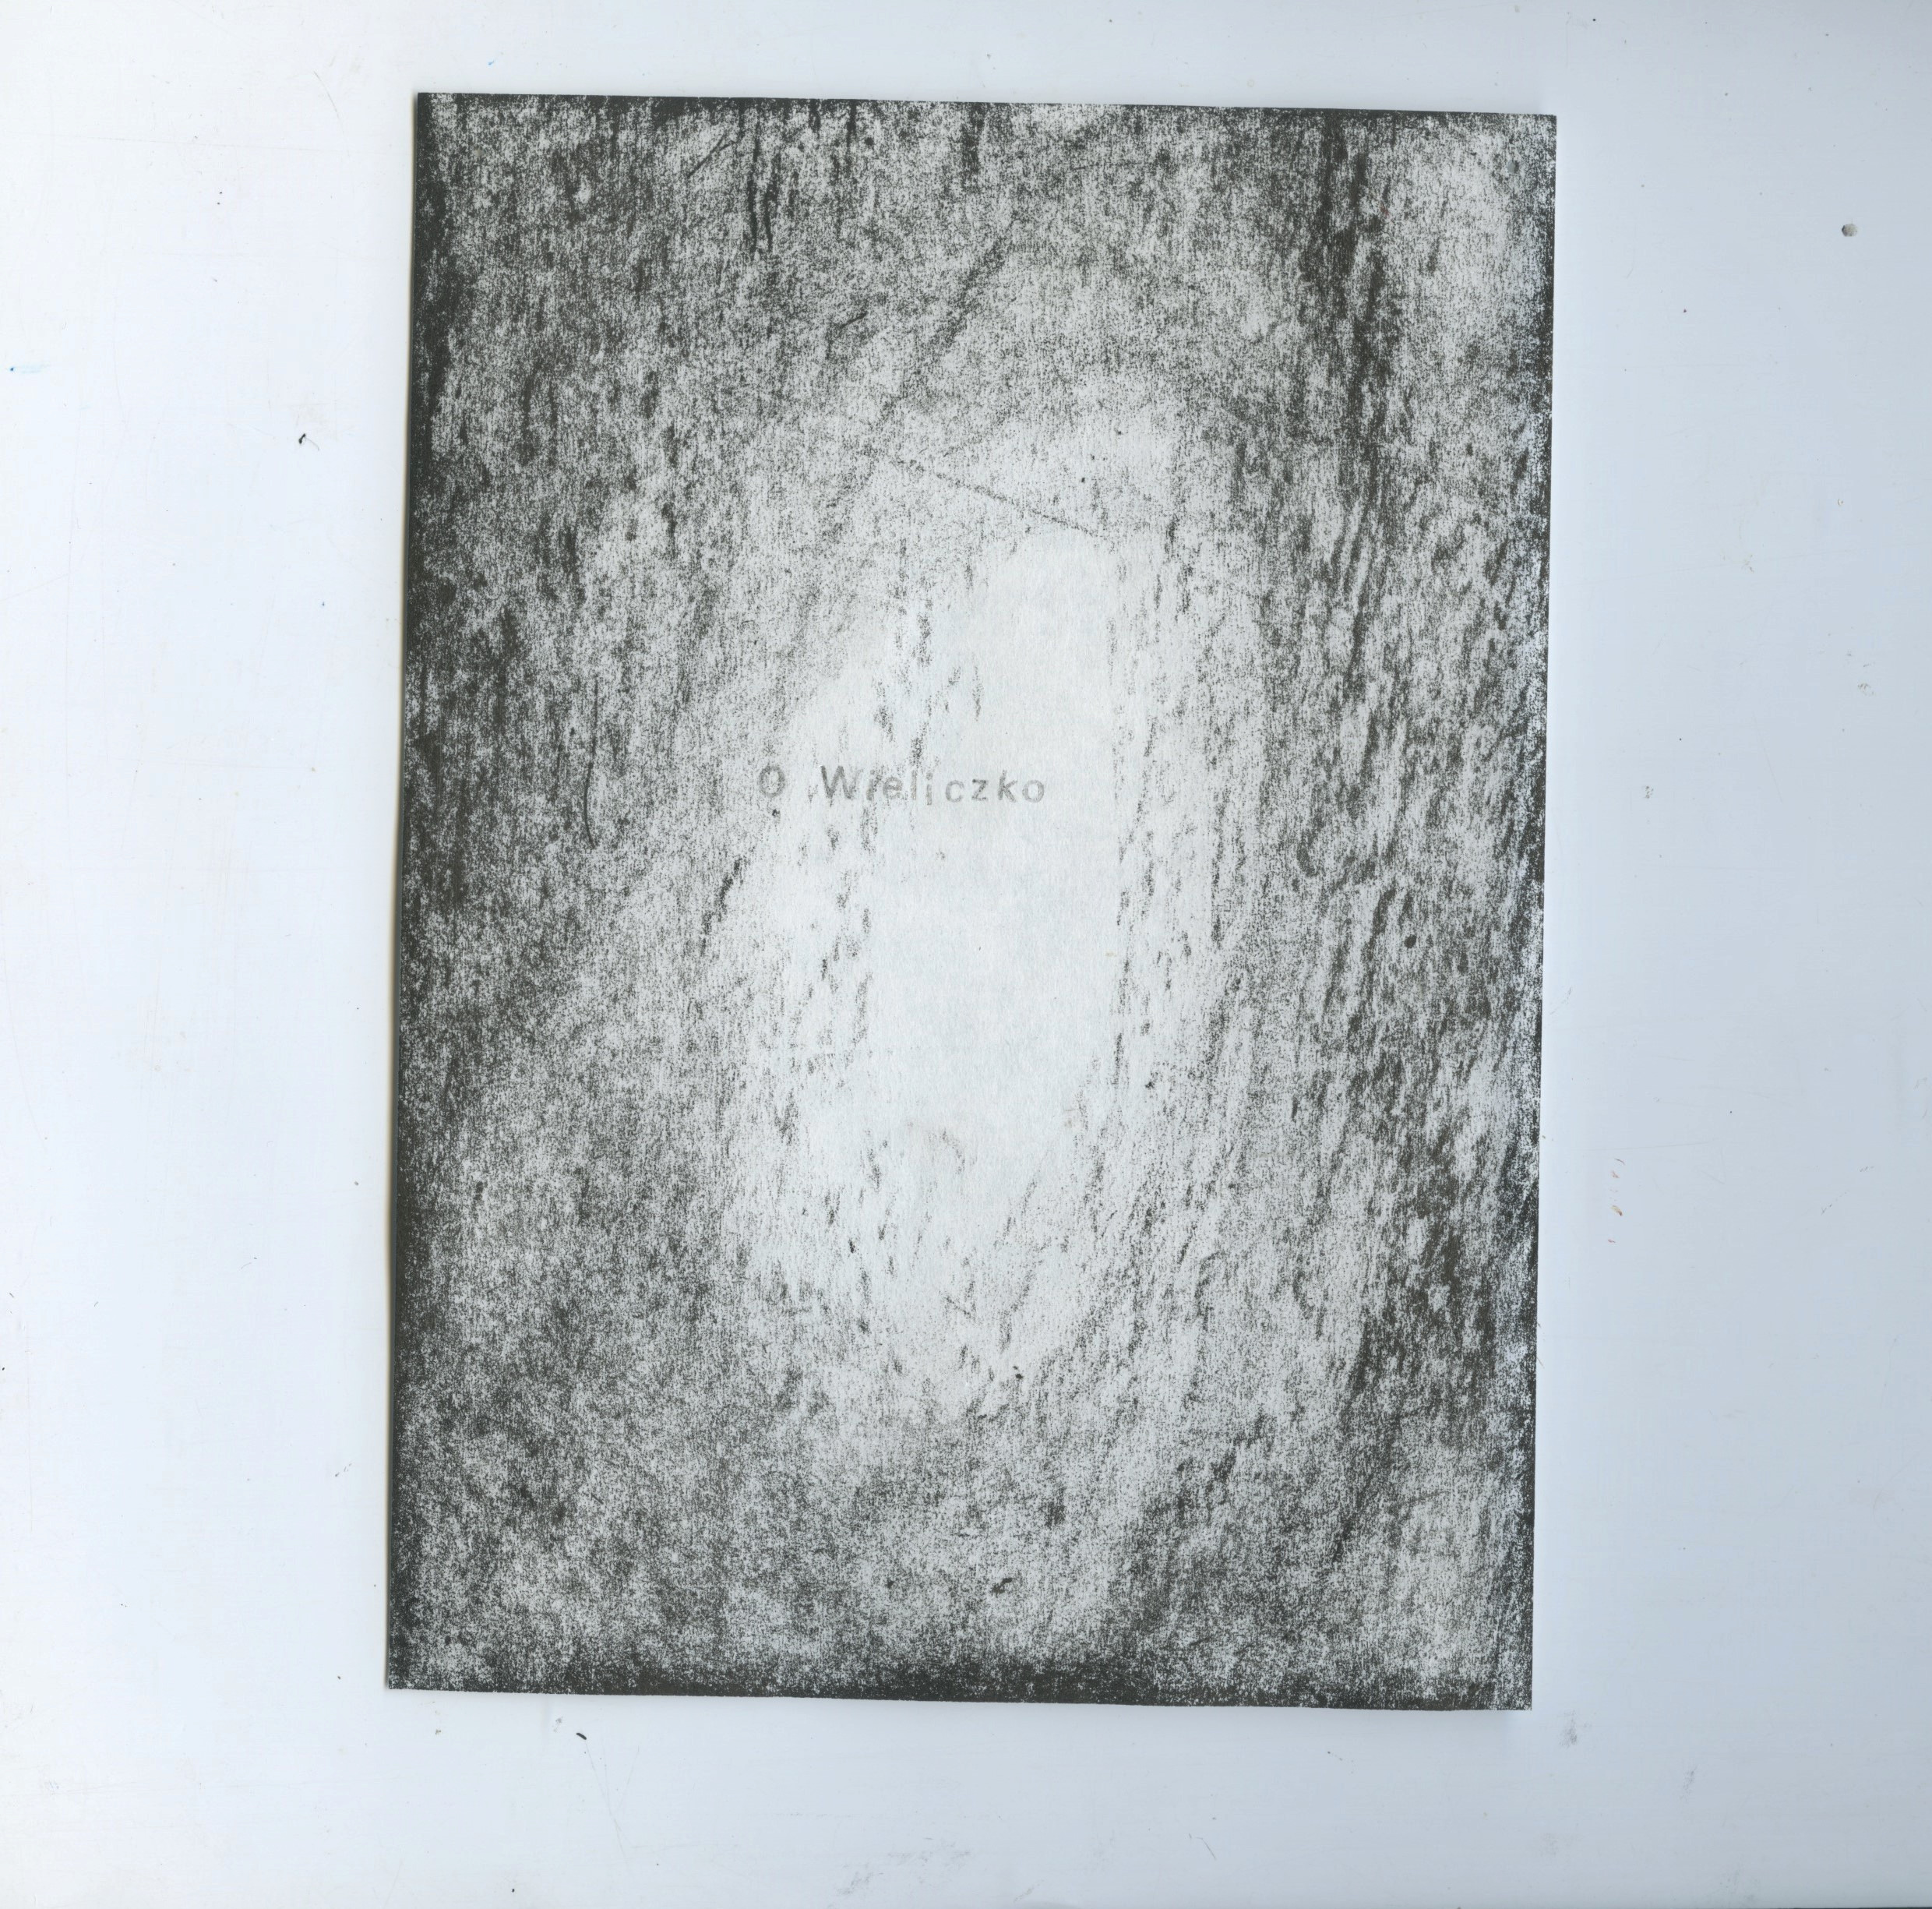 """Scanned sheet of Bible paper with text printed on it in silver ink. The text reads: """"O Wieliczko"""". There is a textured graphite vignette surrounding the text."""